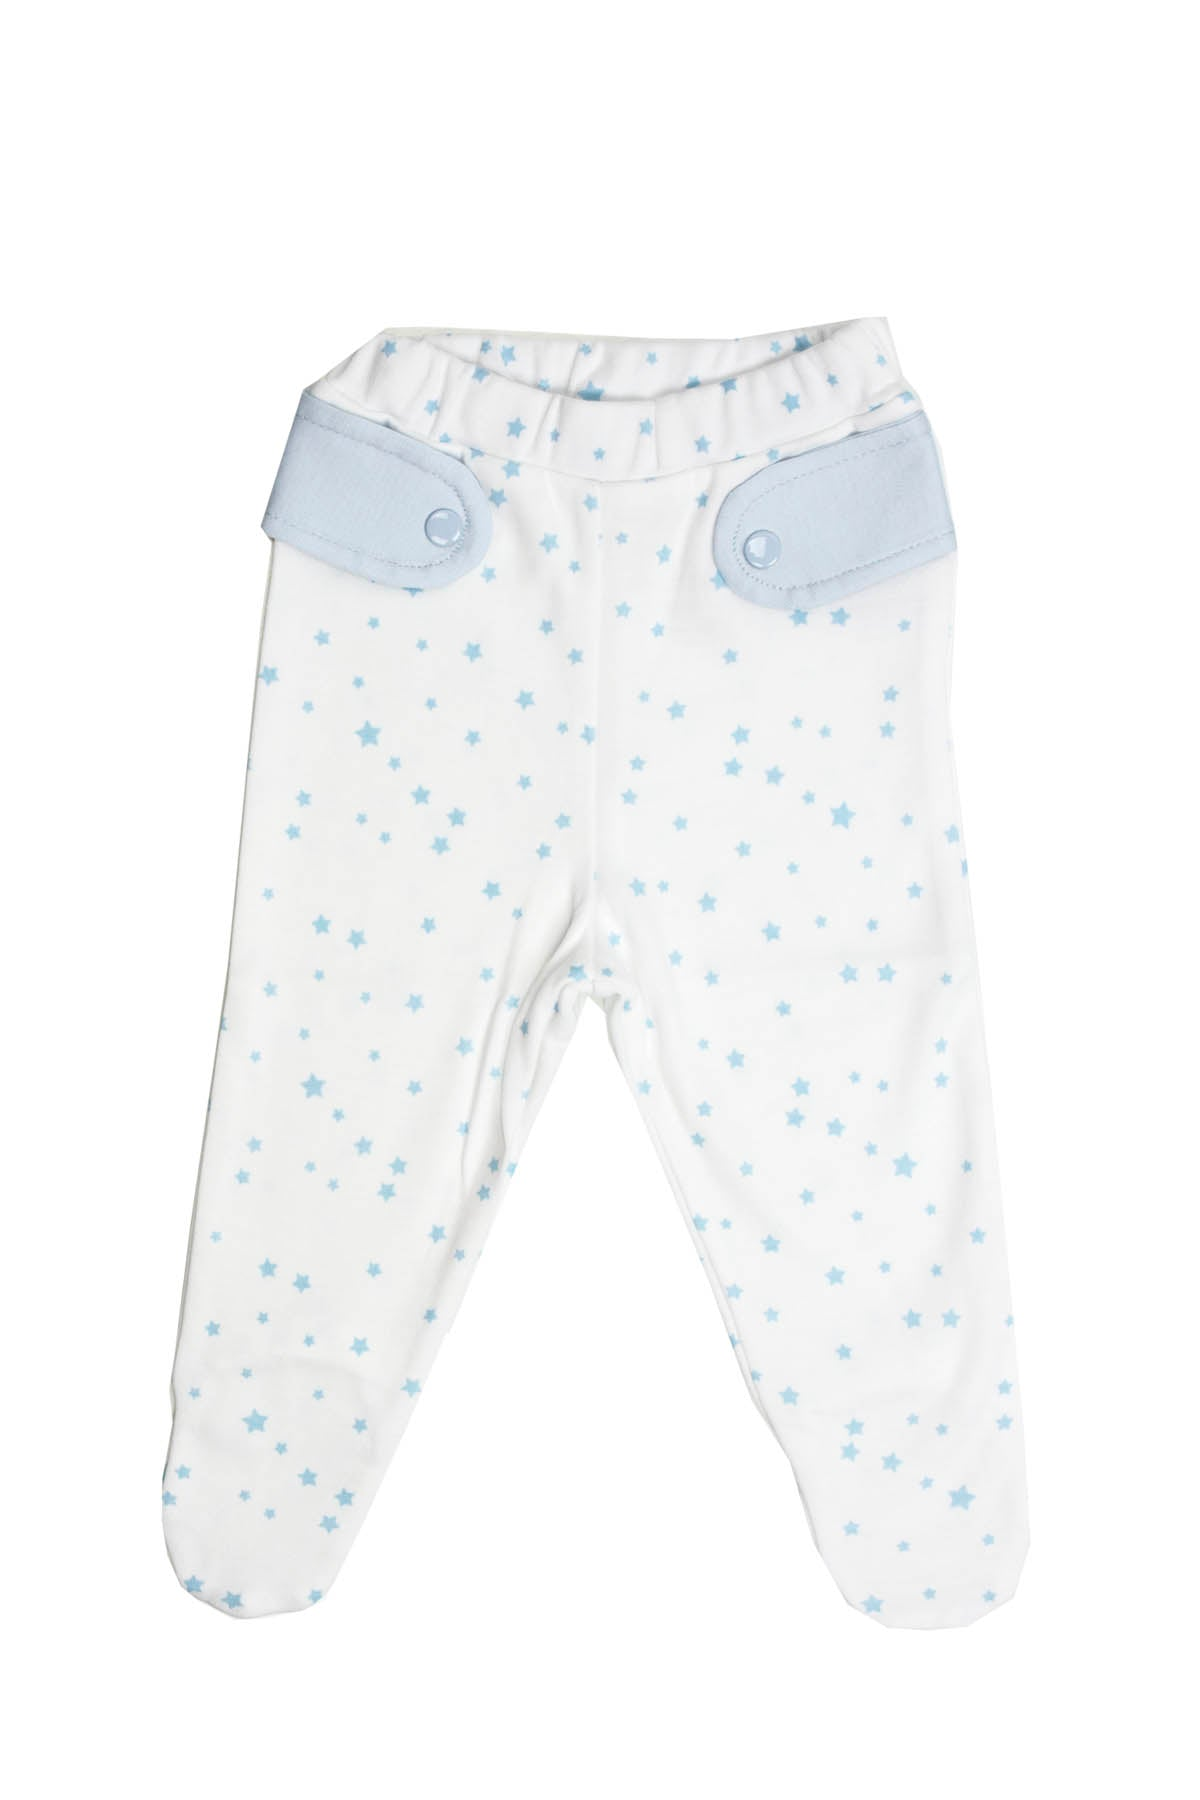 Pants Blue Stars Baby Pima Cotton